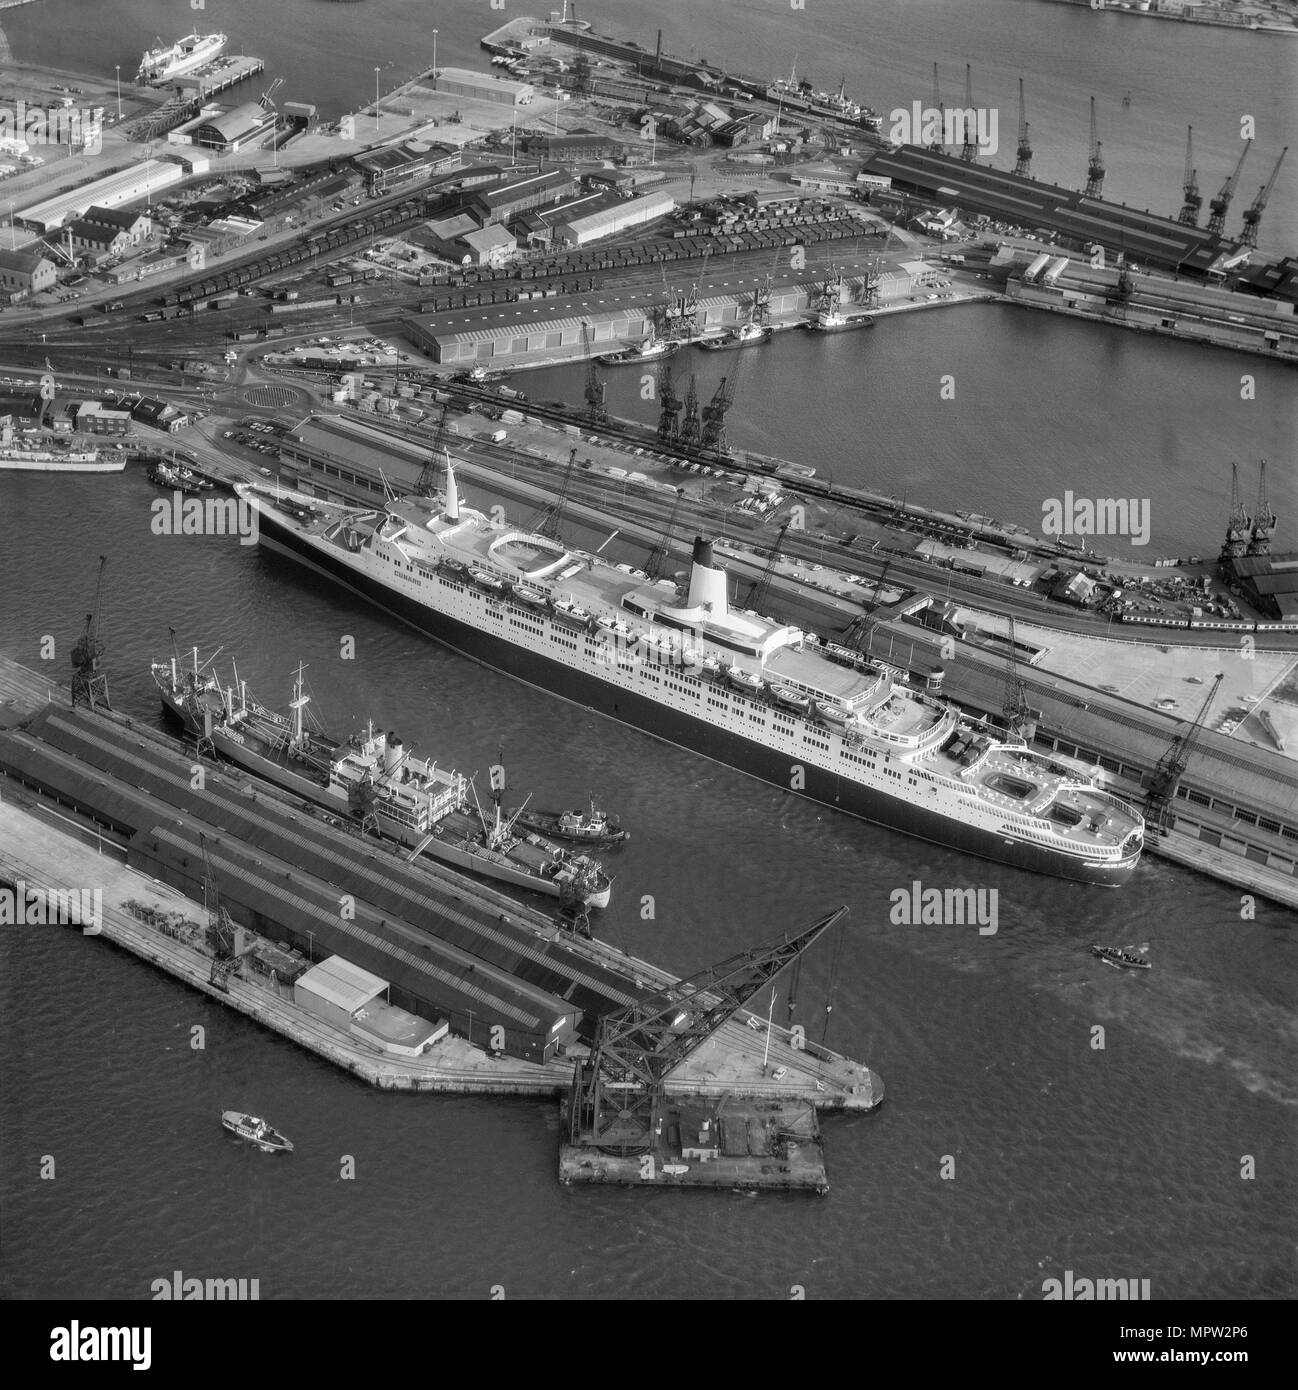 The liner 'QE2' docked at Southampton, Hampshire, 1969. Artist: Cross. - Stock Image